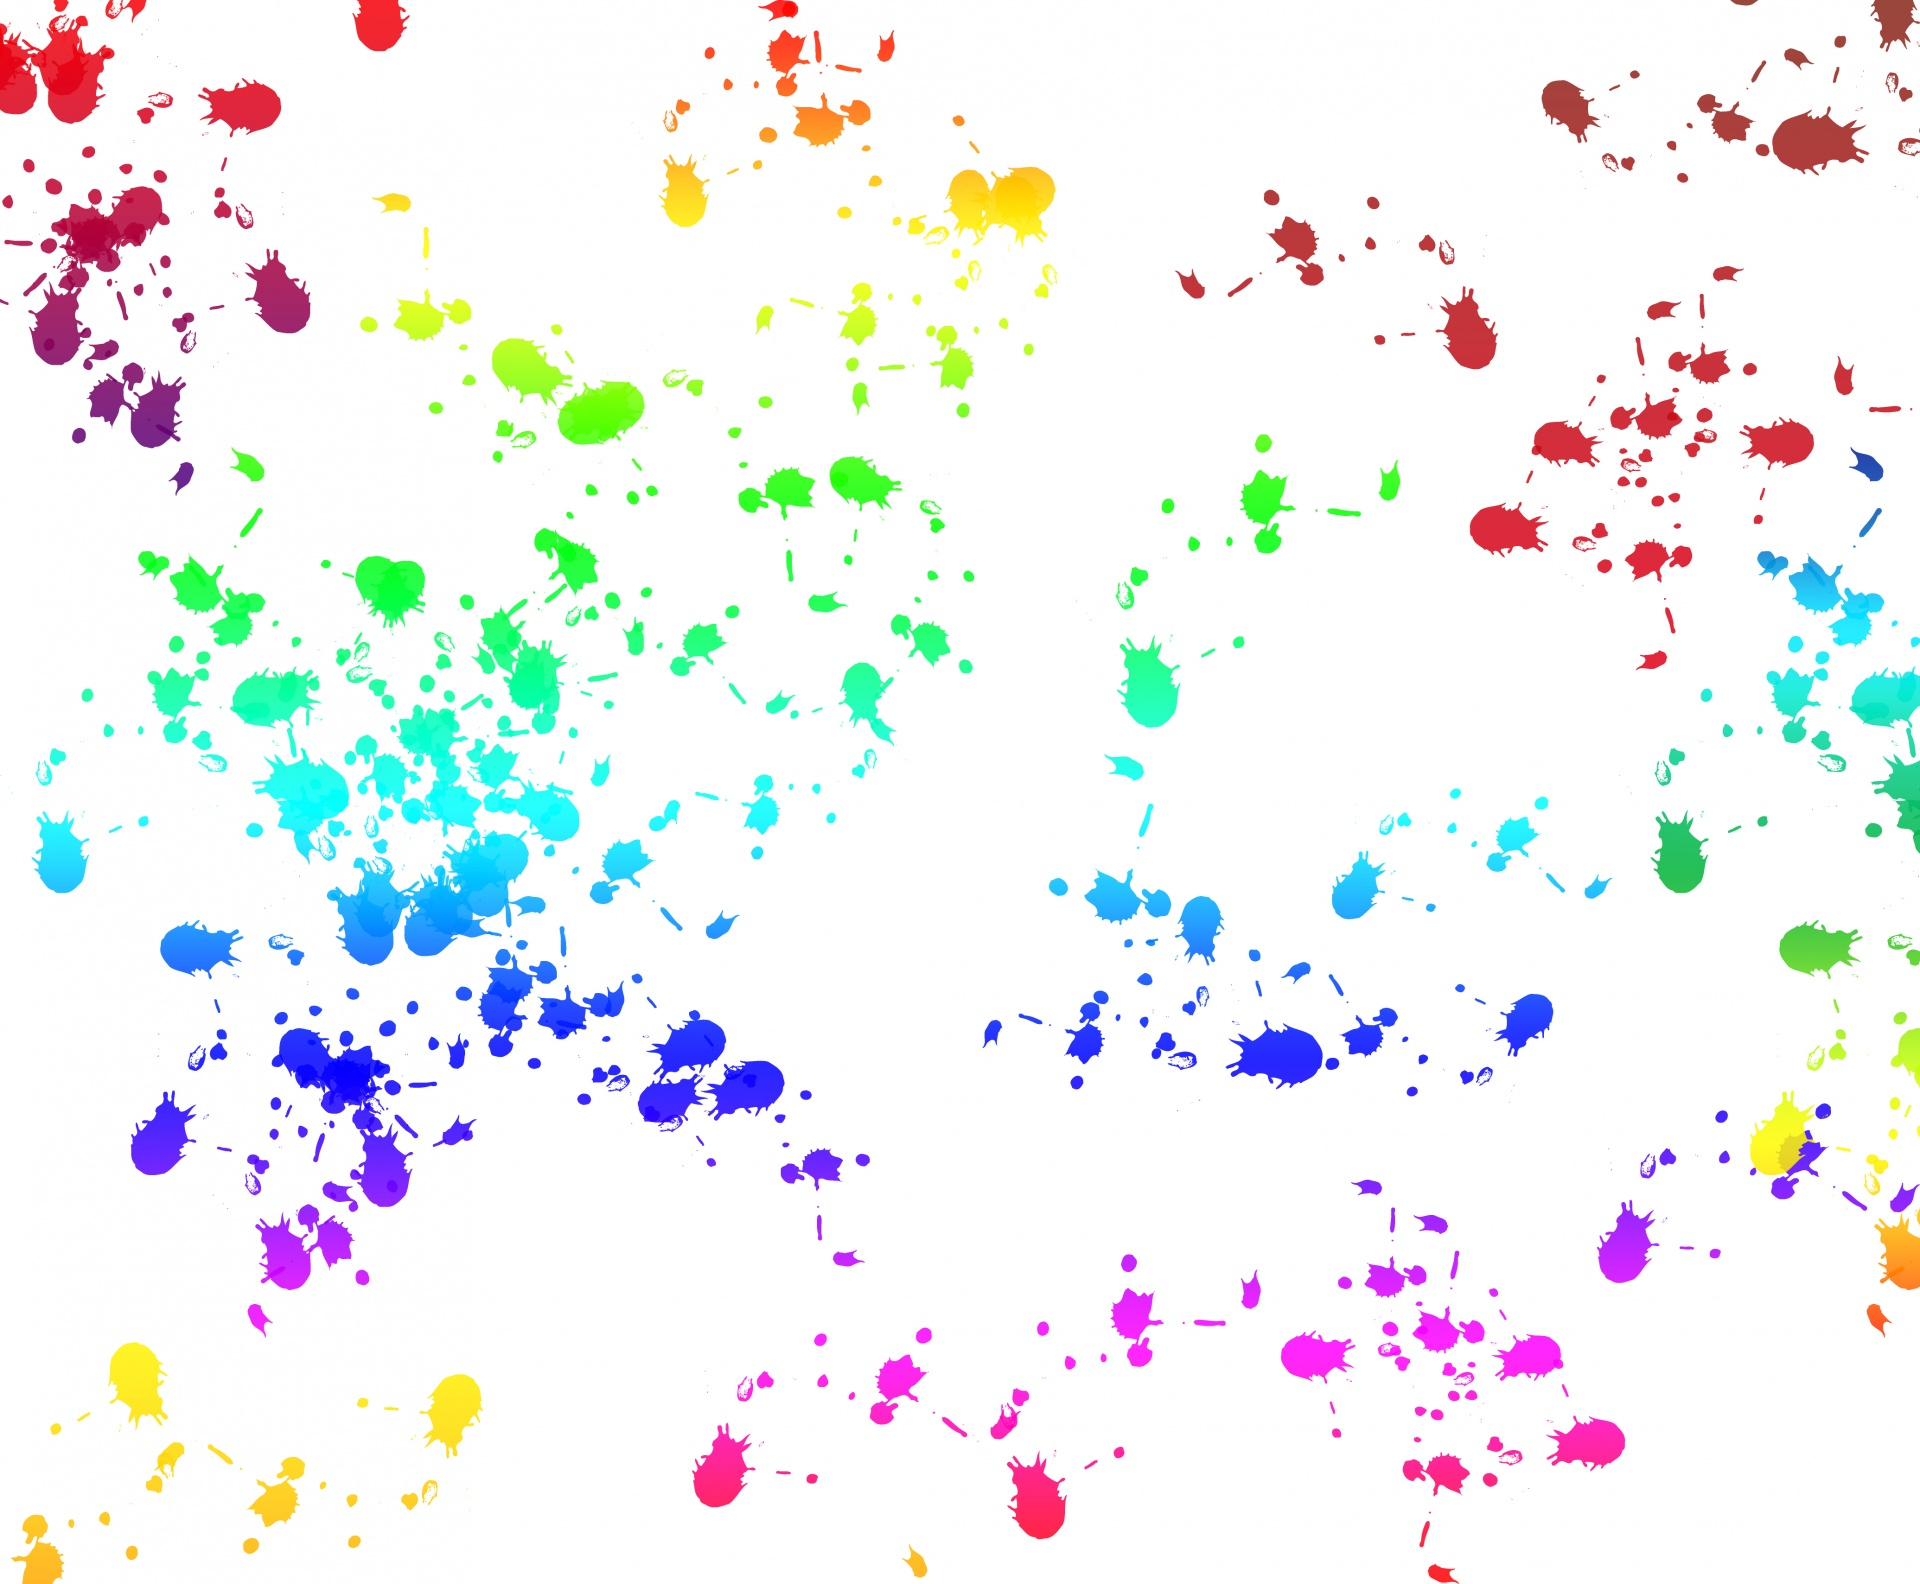 Paint splatter background photo